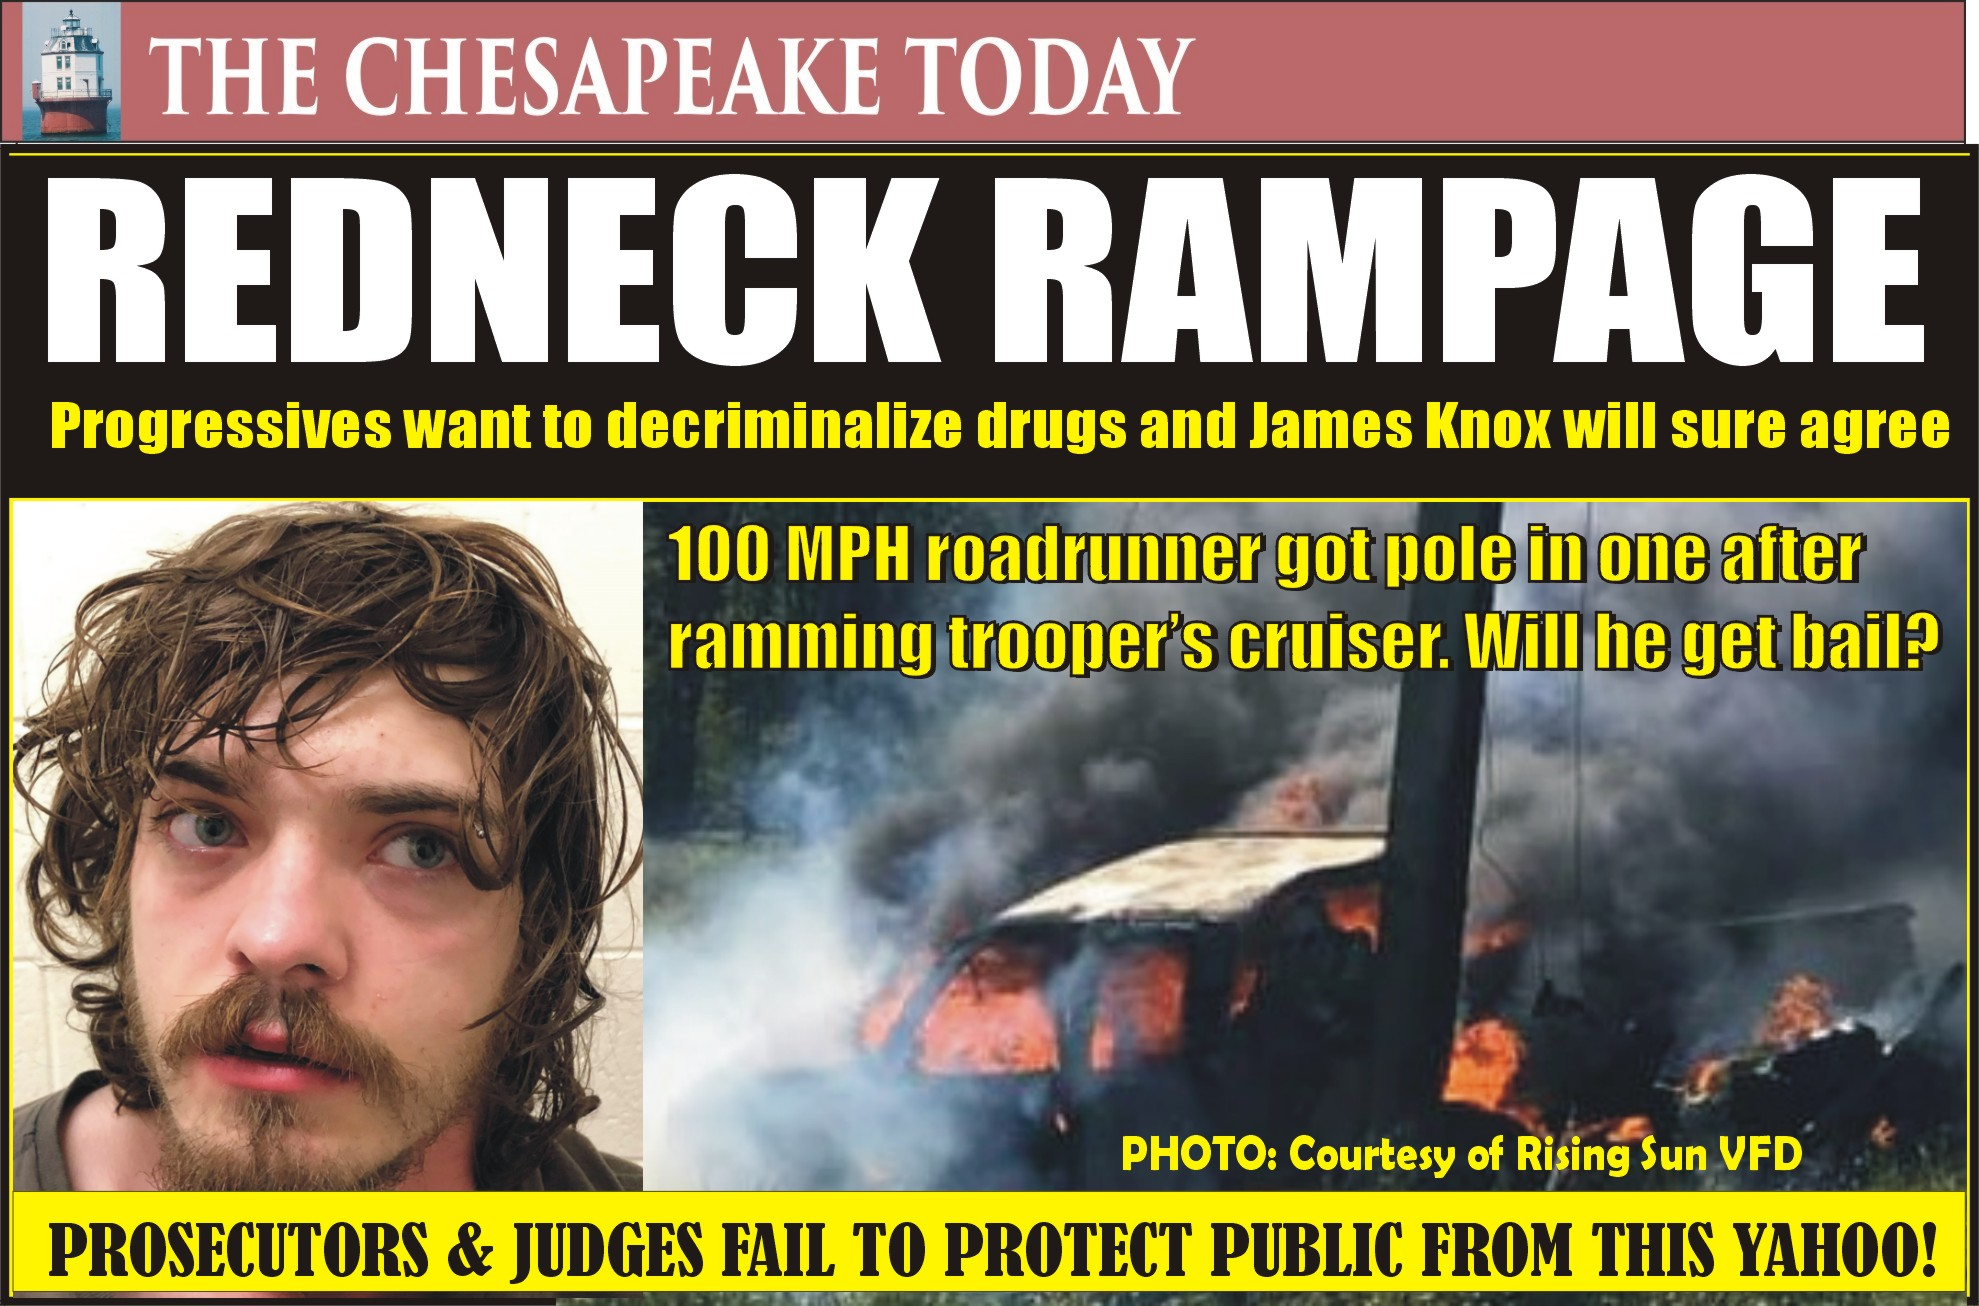 REDNECK RAMPAGE: James Knox slithered out from under a rock in a thrilling Cabin Fever episode not to be forgotten; rammed trooper, got a pole-in-one, burned his truck to a crisp